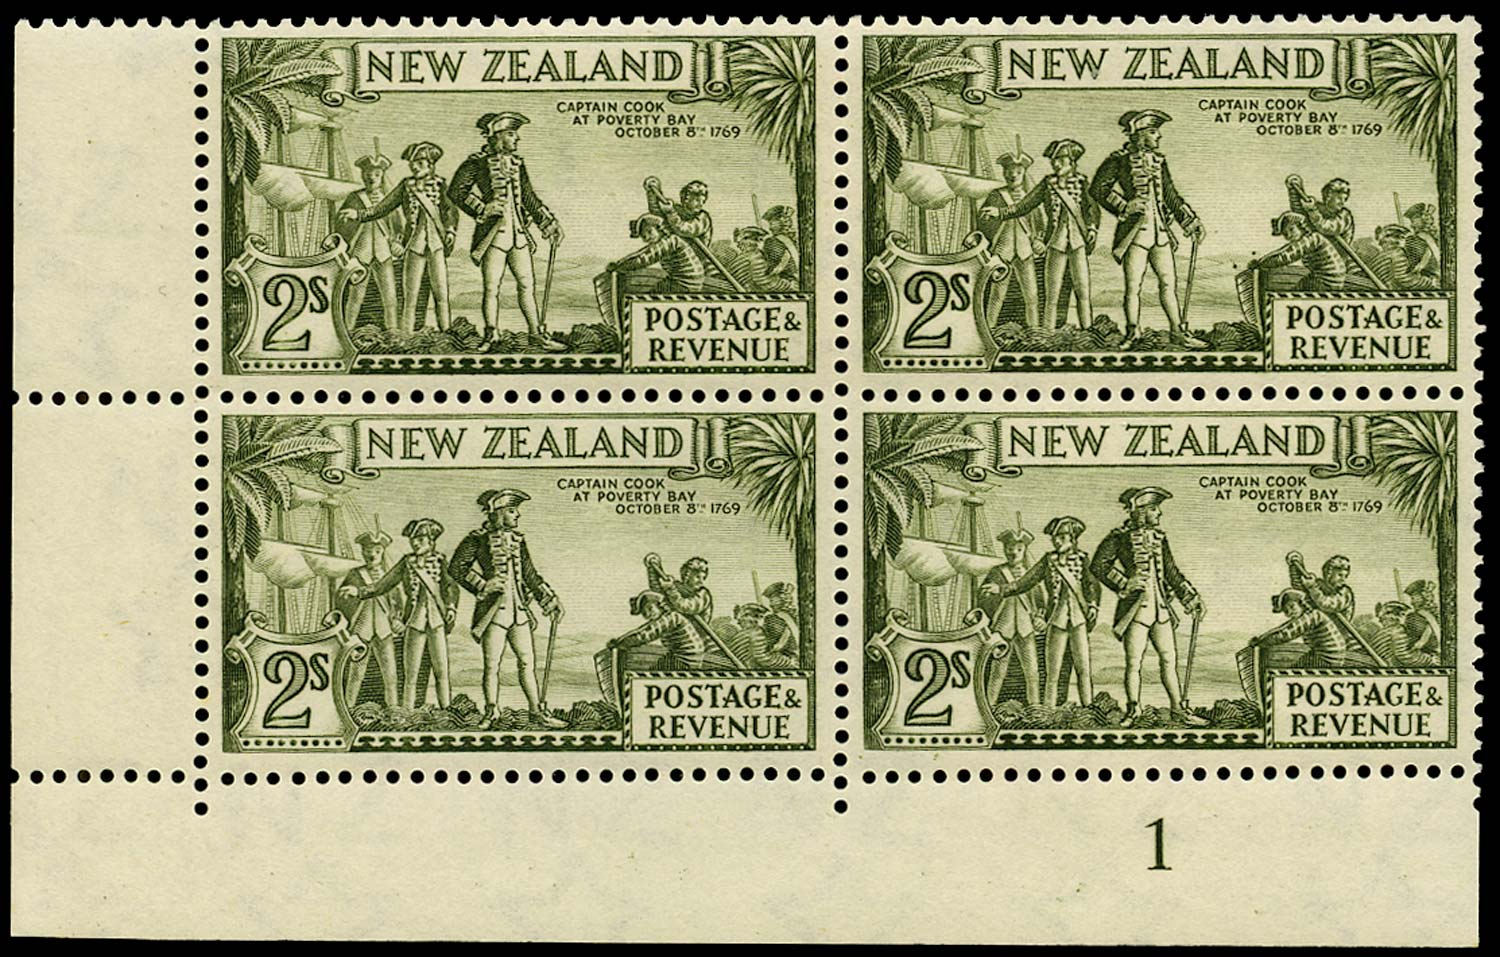 NEW ZEALAND 1939  SG589c Mint 2s olive-green perf 13½x14 watermark 98